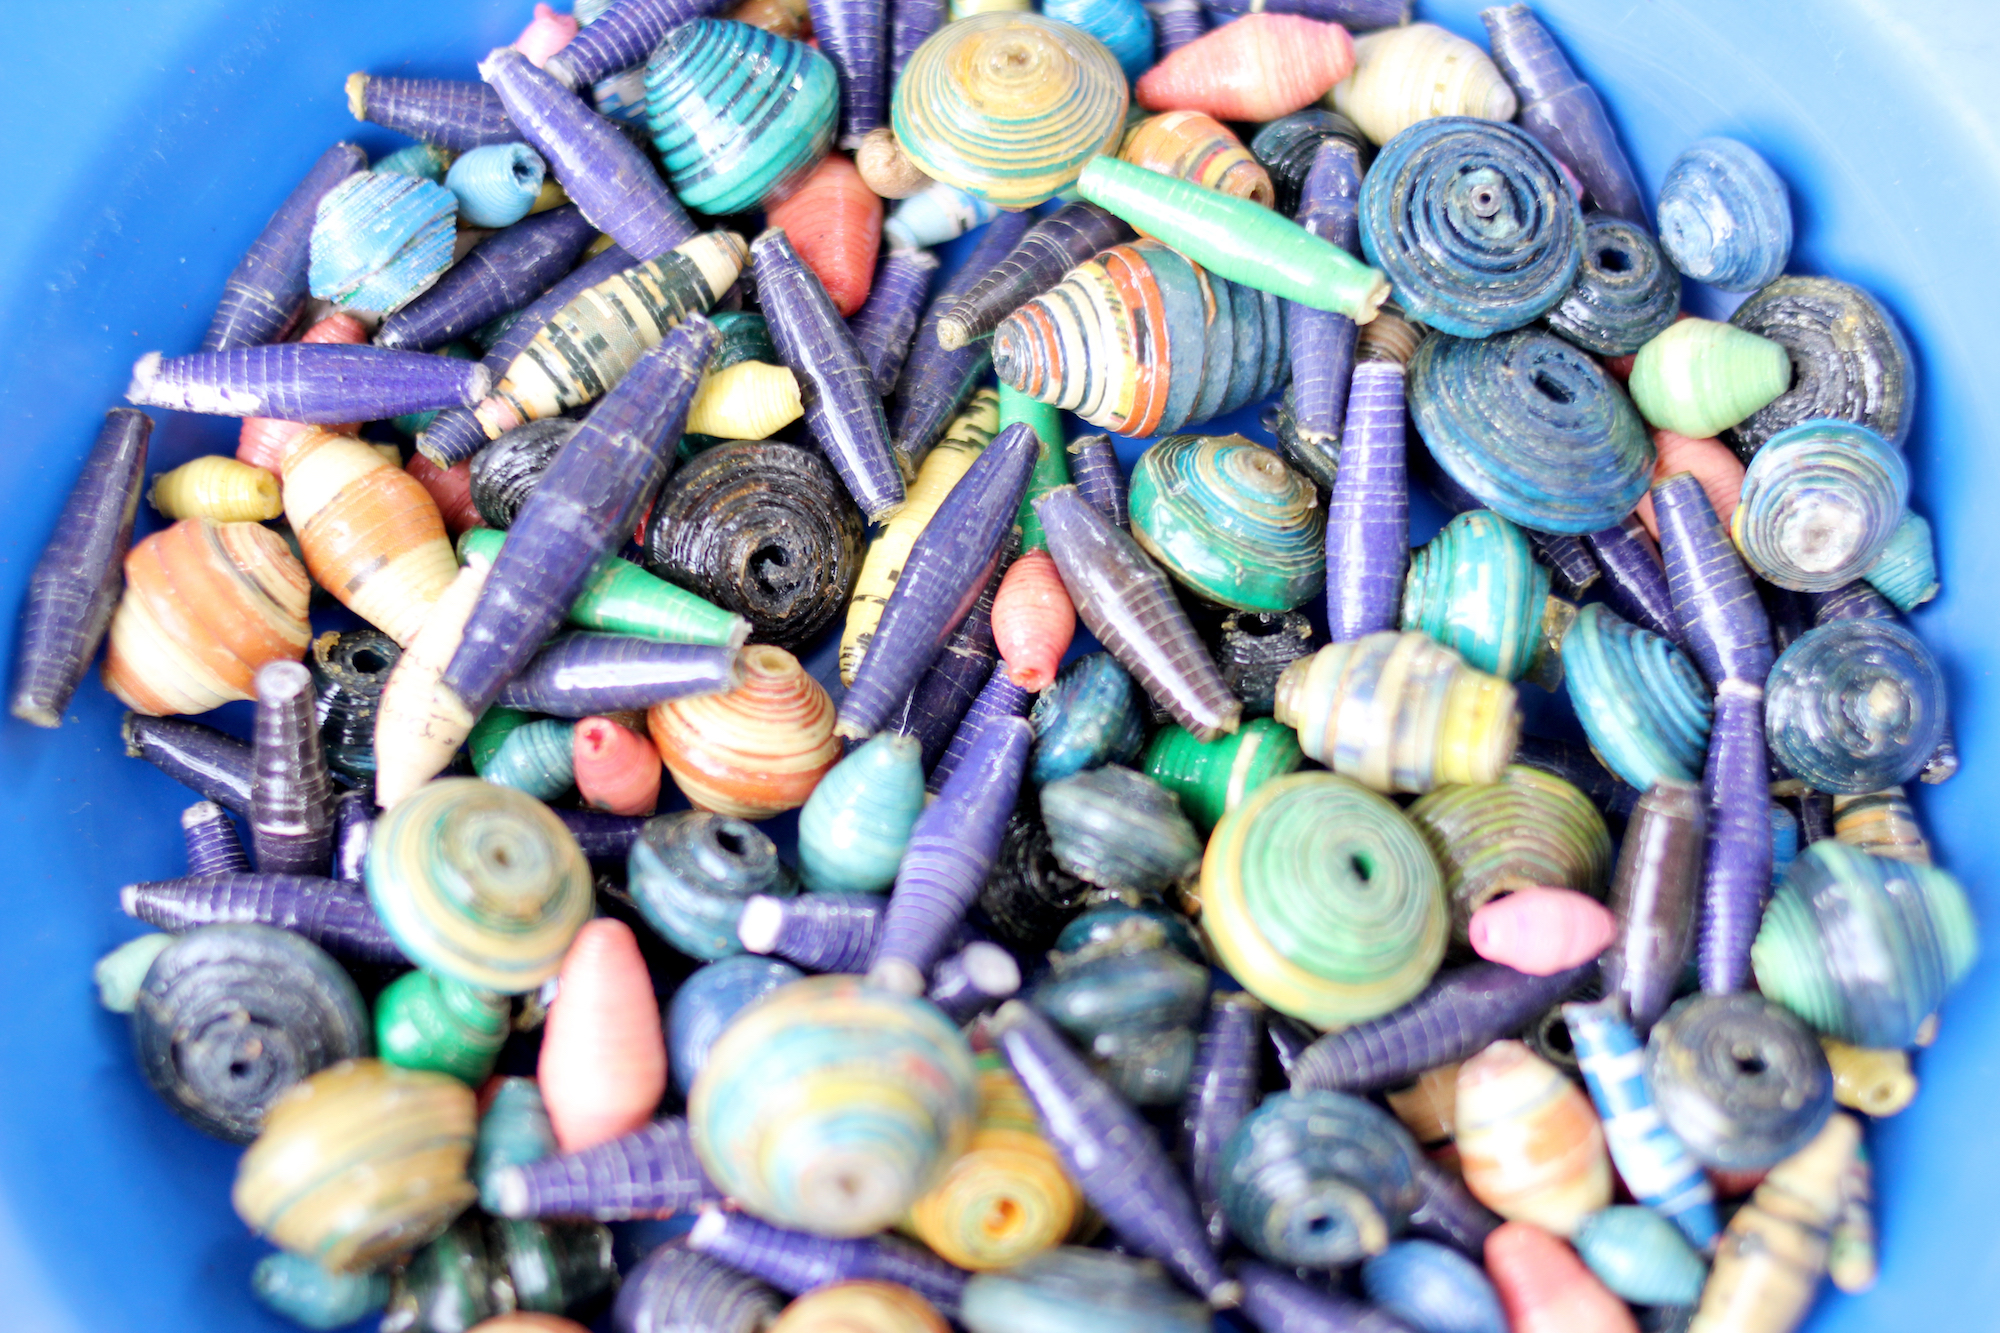 Closeup of colorful beads in a blue bowl